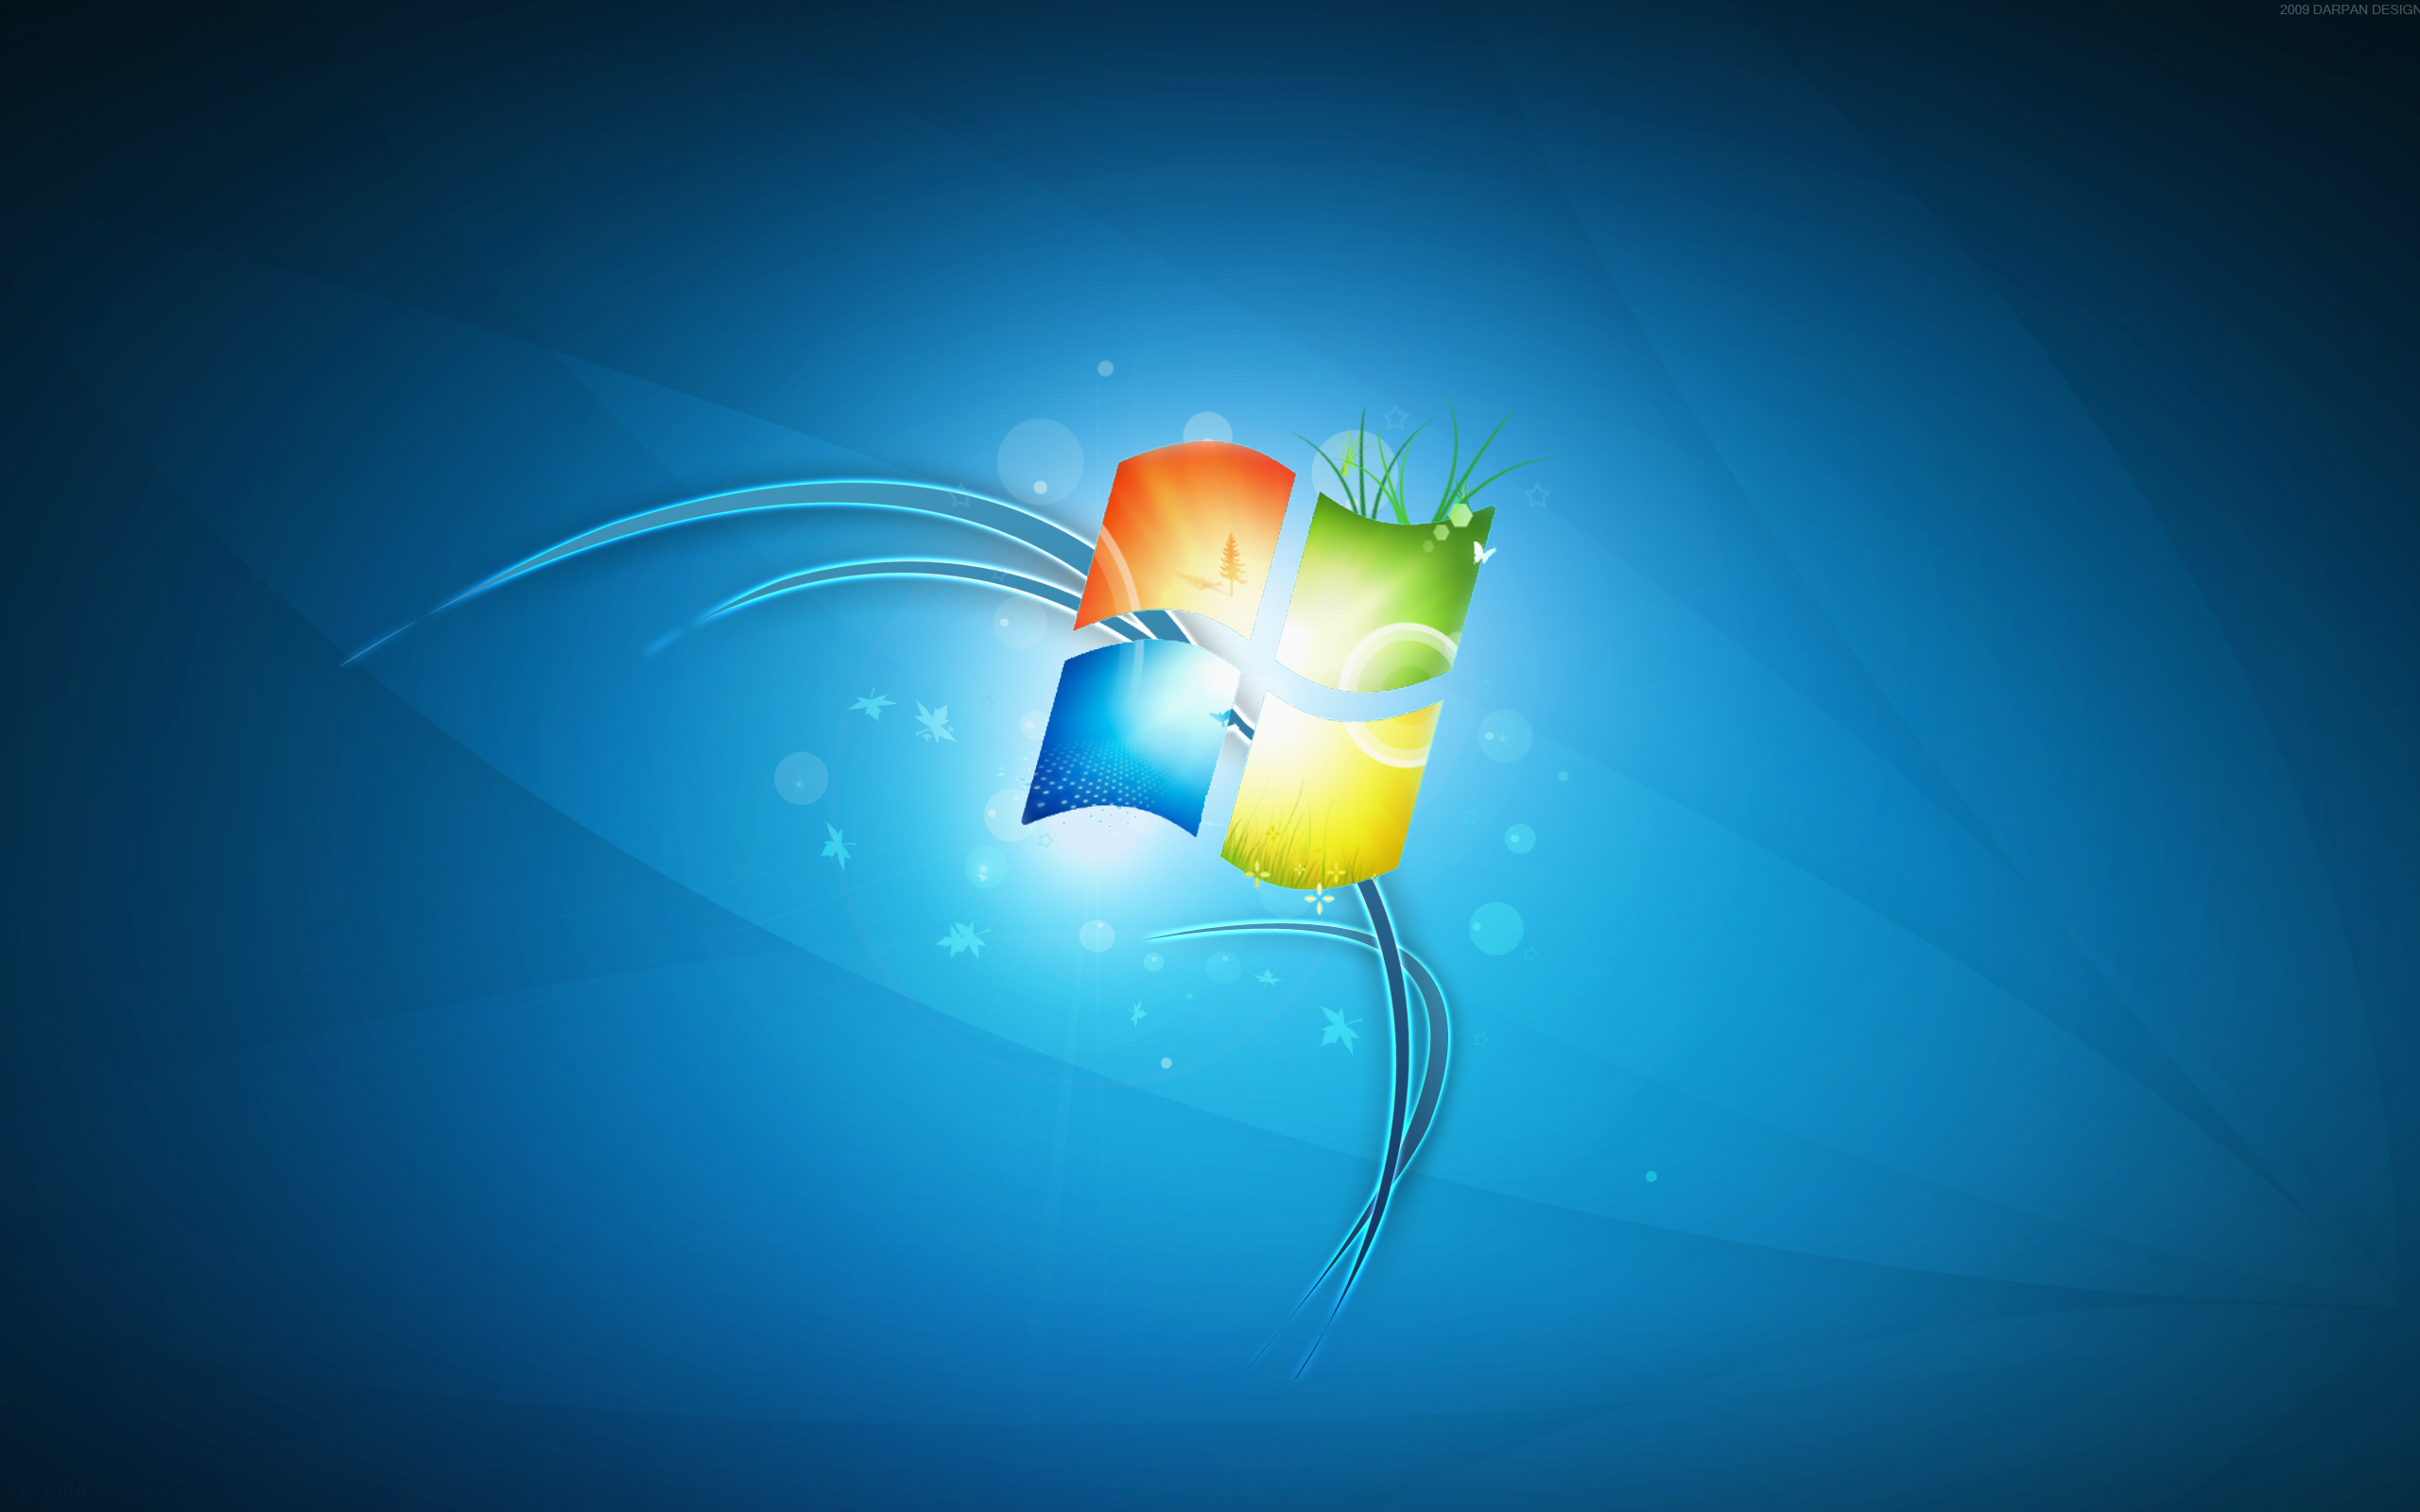 50 Best Windows 7 Wallpapers In Hd